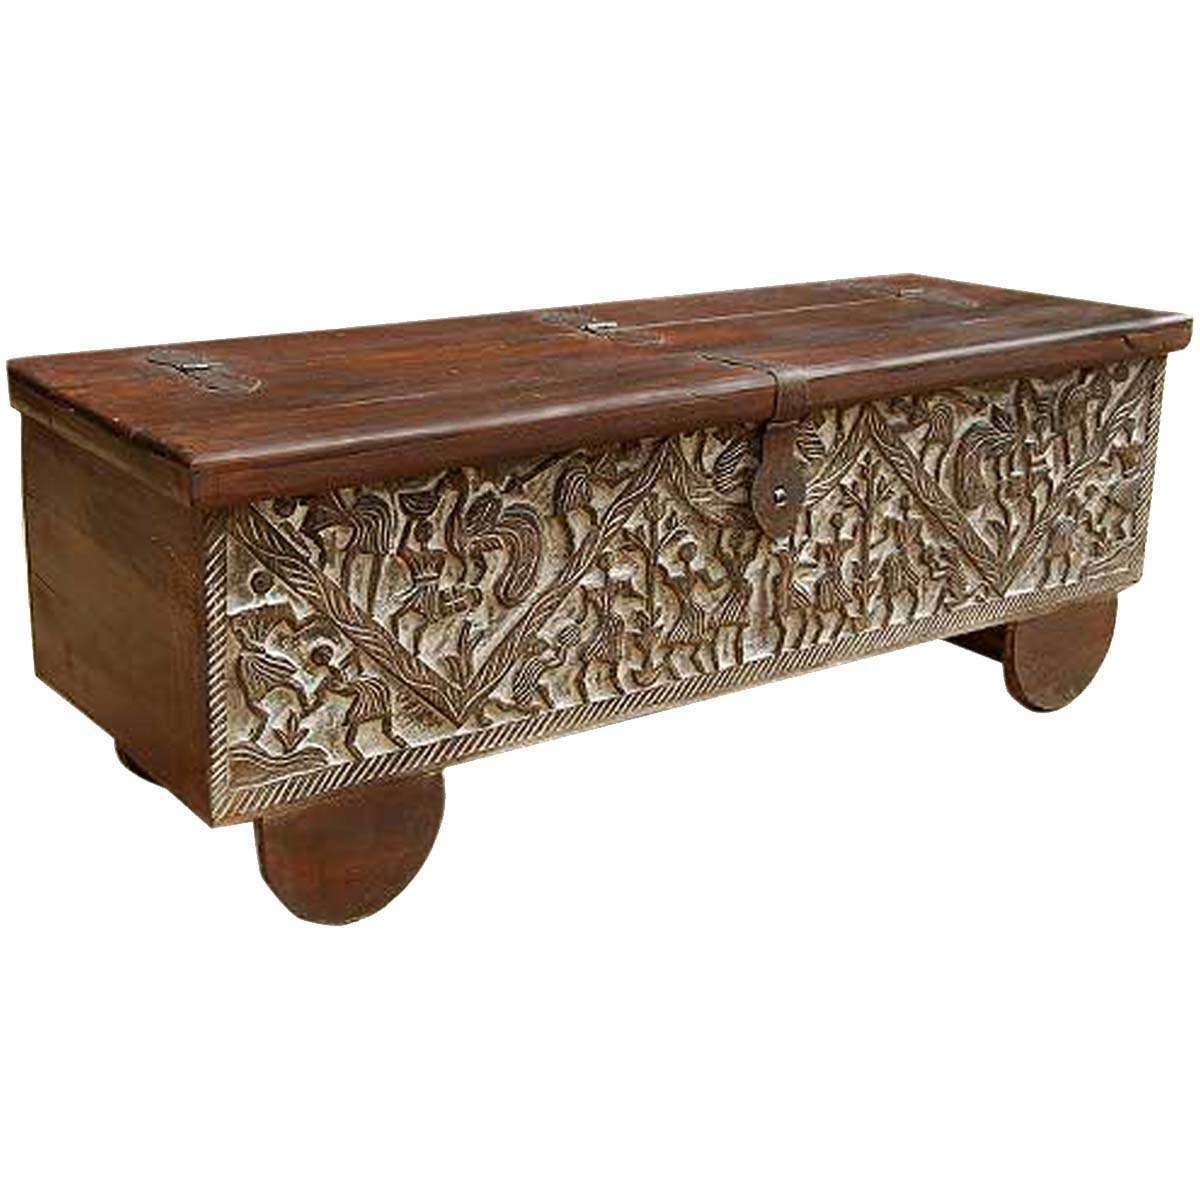 Hand Carved Mango Wood Storage Trunk Coffee Table Within Most Up To Date Mango Wood Coffee Tables (View 7 of 20)